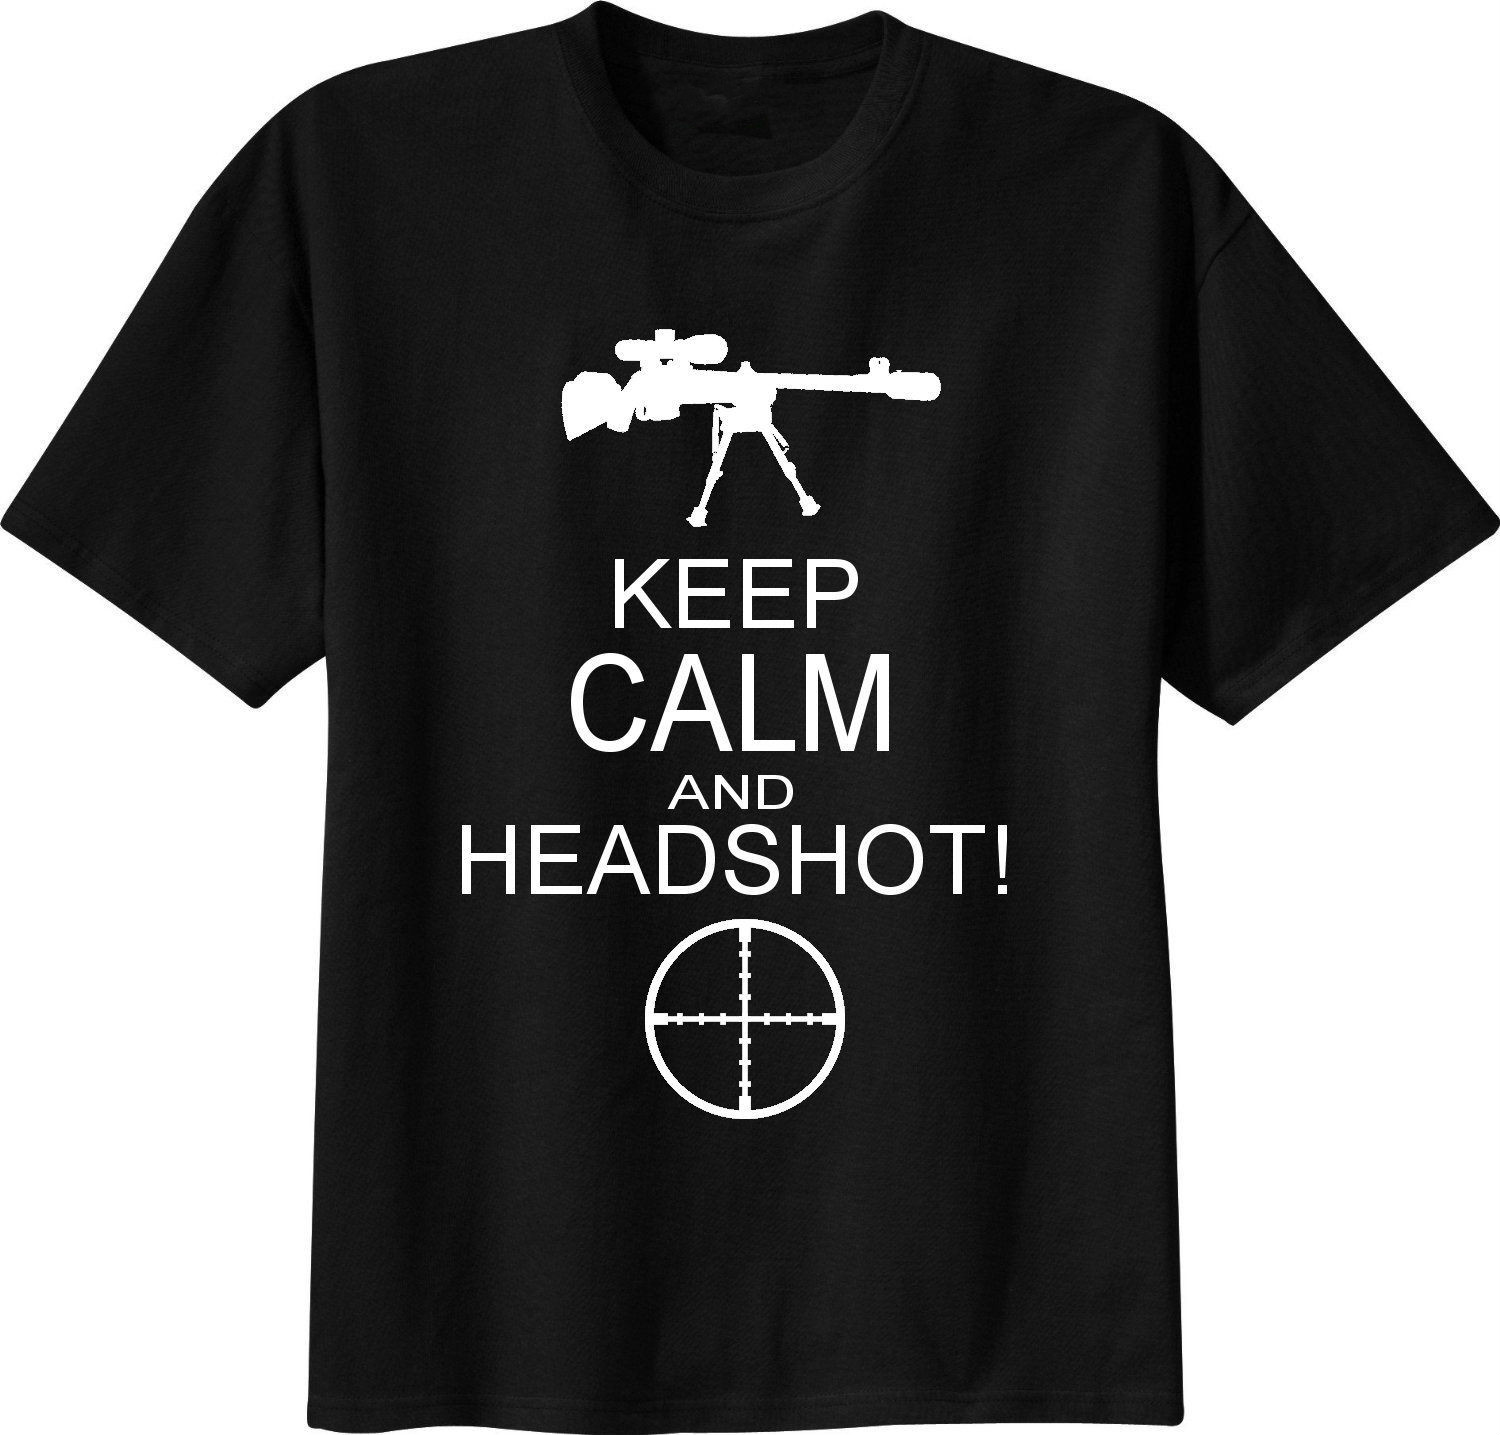 T-SHIRT cecchino sniper KEEP CALM HEADSHOT fps mmo image